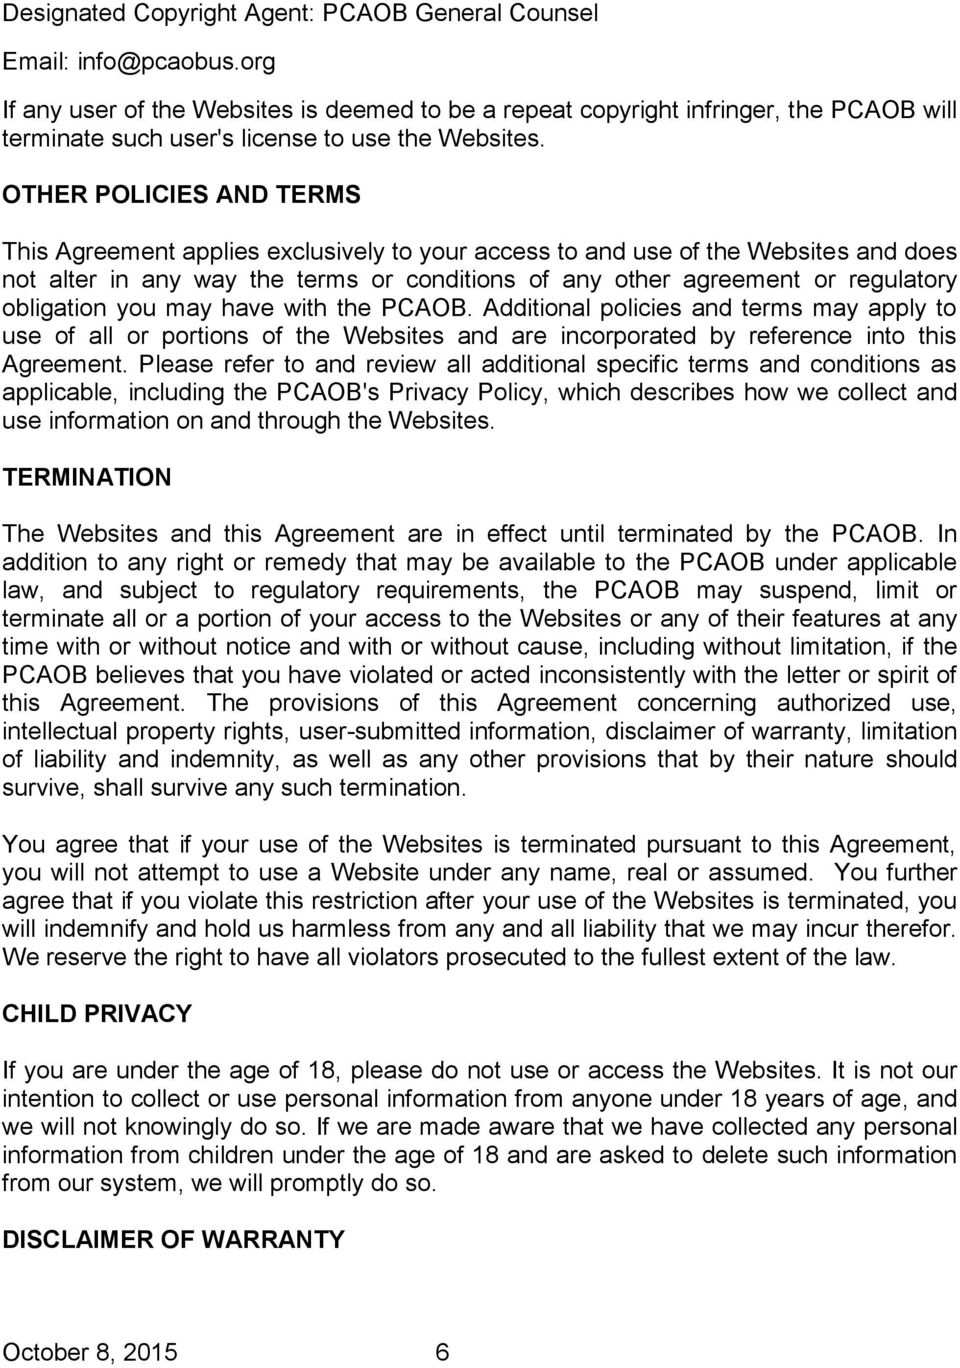 OTHER POLICIES AND TERMS This Agreement applies exclusively to your access to and use of the Websites and does not alter in any way the terms or conditions of any other agreement or regulatory